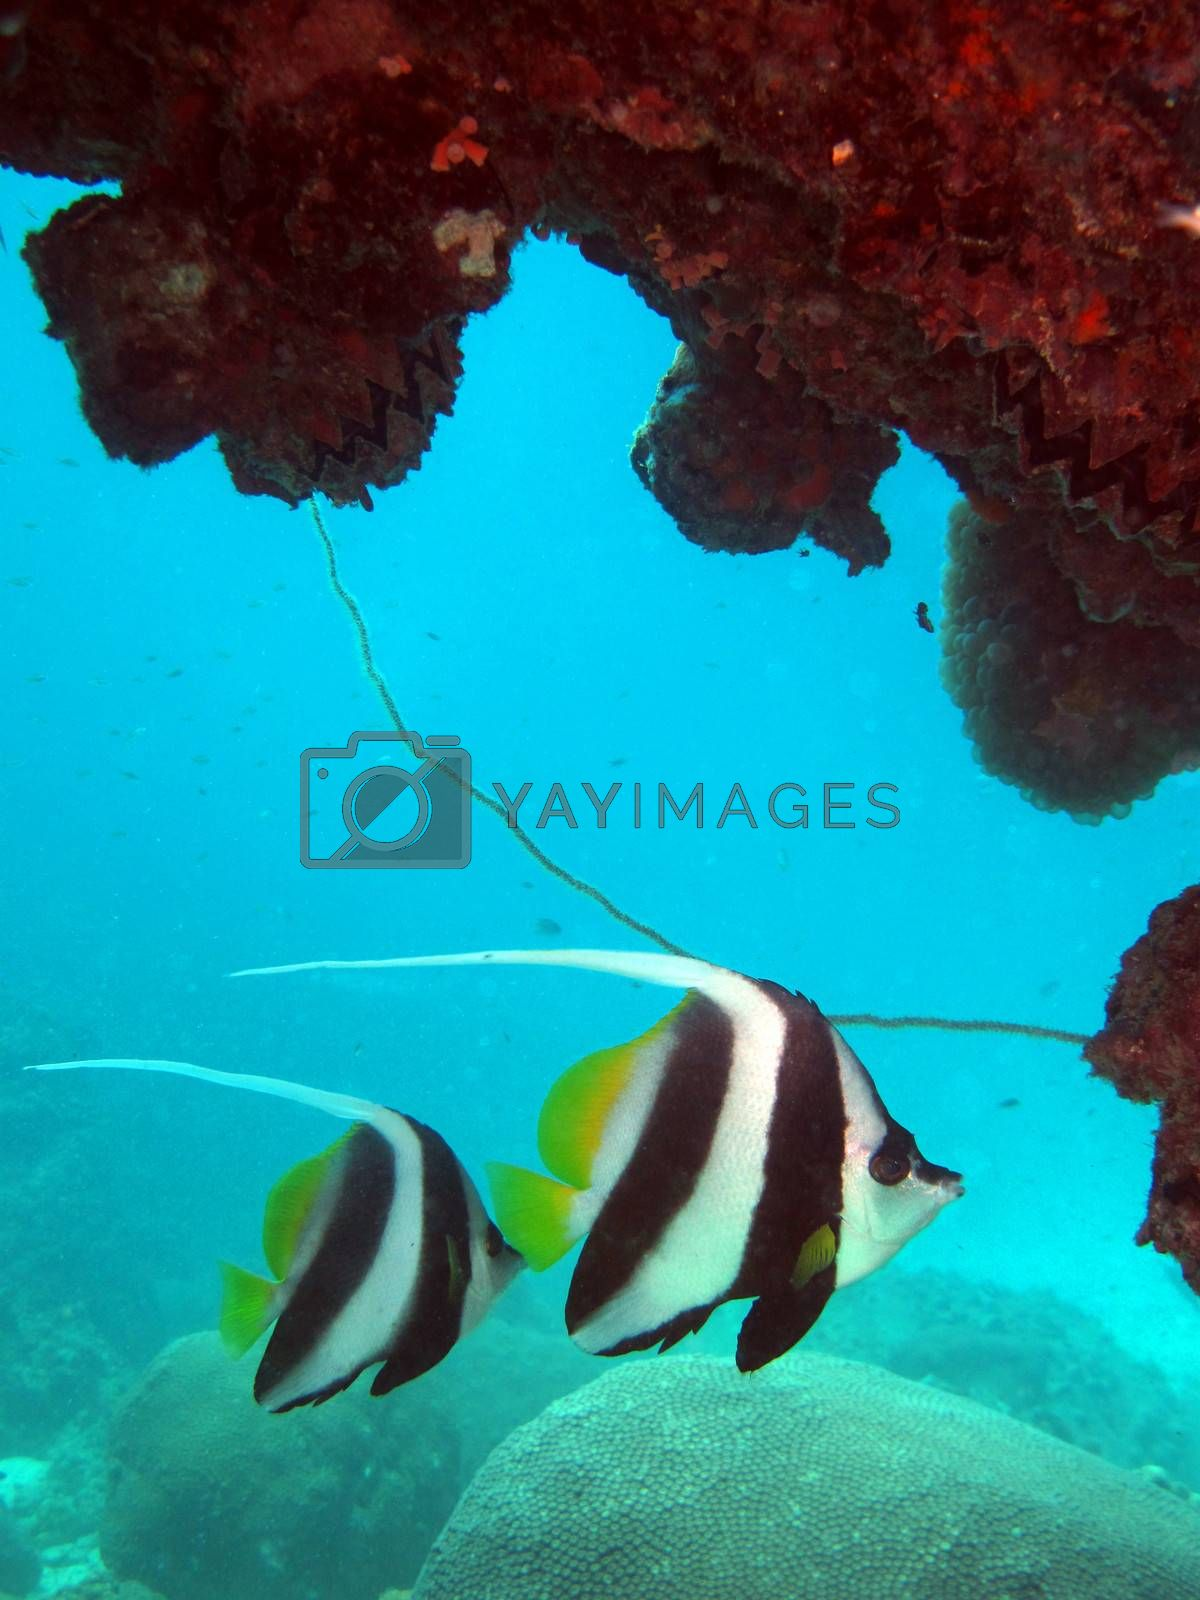 Royalty free image of two bannerfish by AdrianKaye